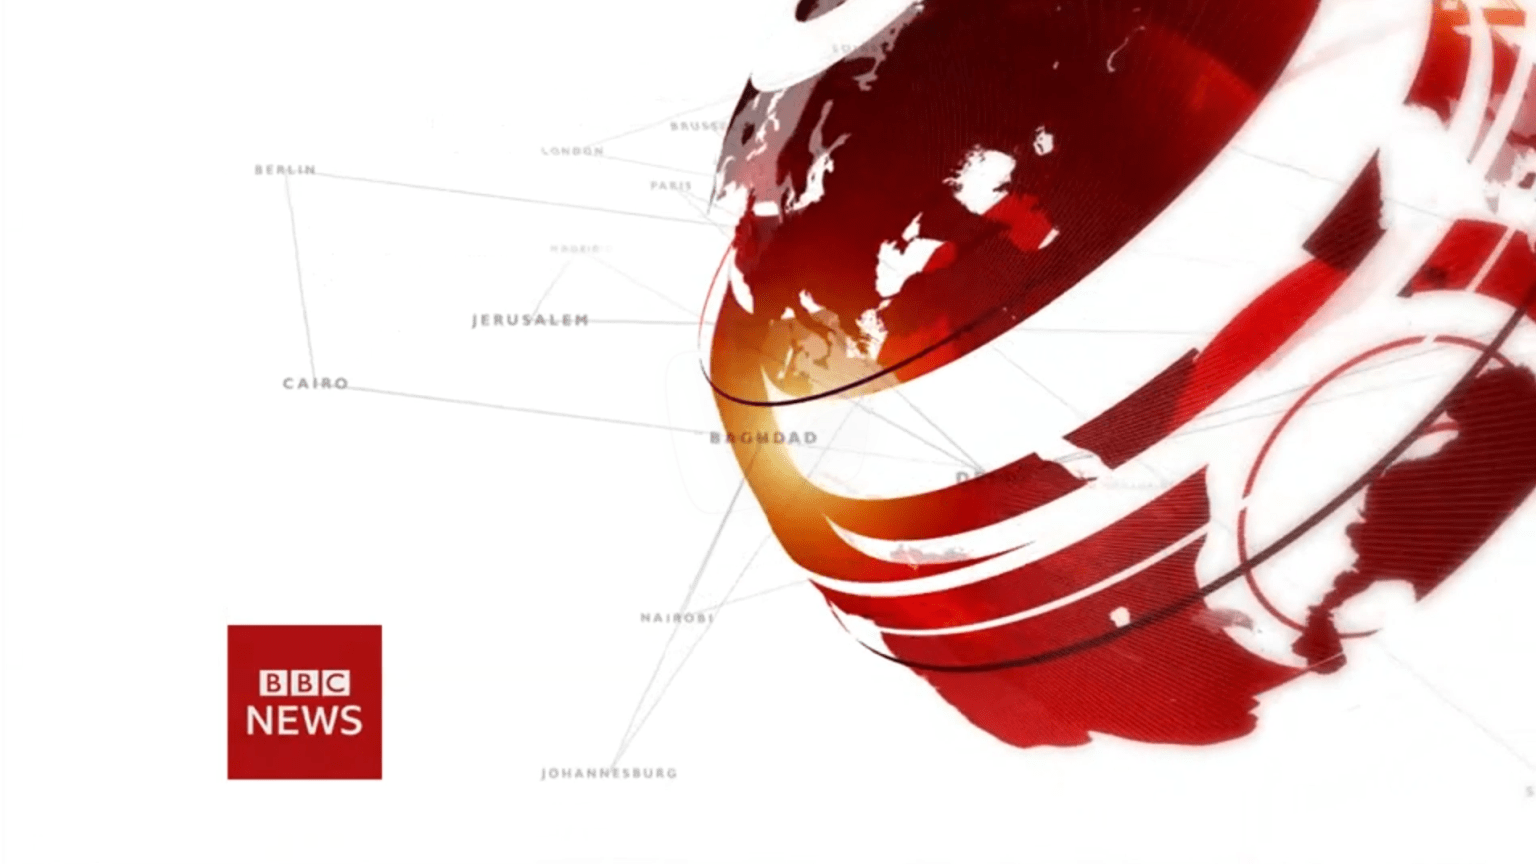 PICTURED: BBC News logo.